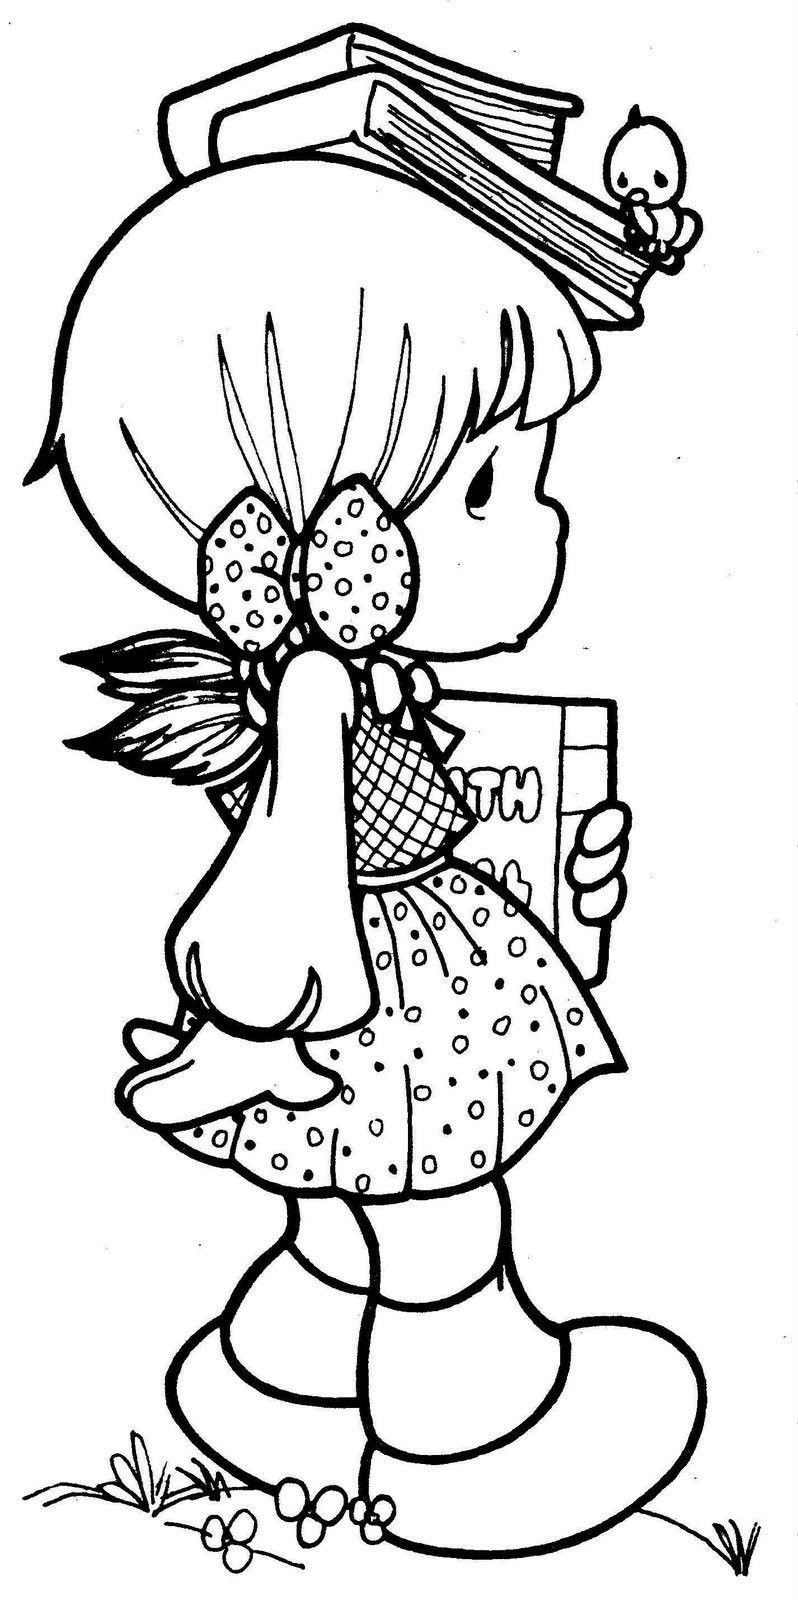 Fall back to school | Precious moments coloring pages, Coloring pages,  Coloring pictures